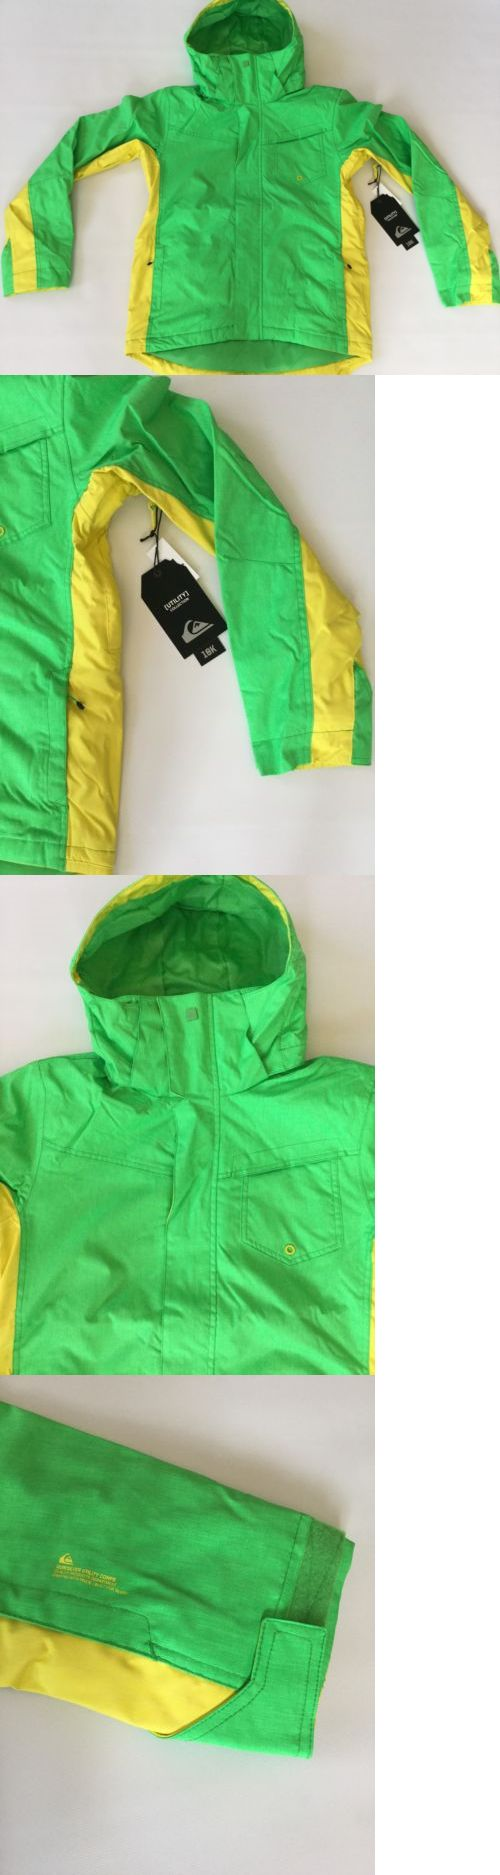 Coats and Jackets 26346: $180 Quiksilver Mens Green Snow 10K Jacket Ski Snowboard Insulation Size Xl -> BUY IT NOW ONLY: $79.99 on eBay!